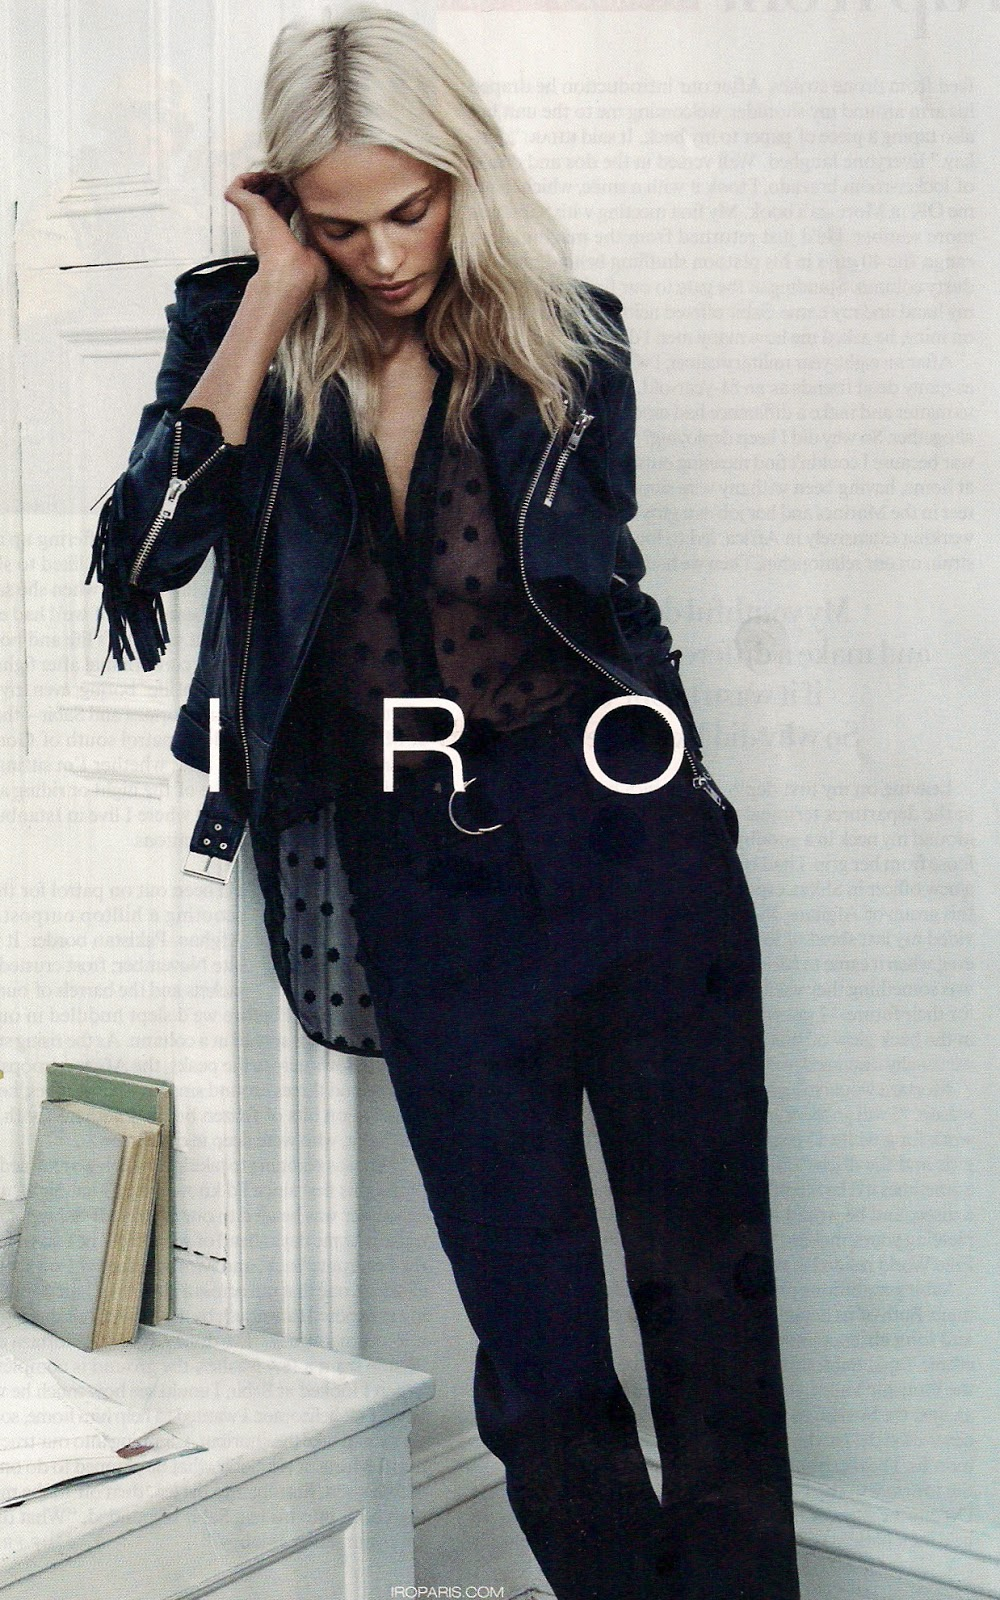 IRO black leather jacket and black pants